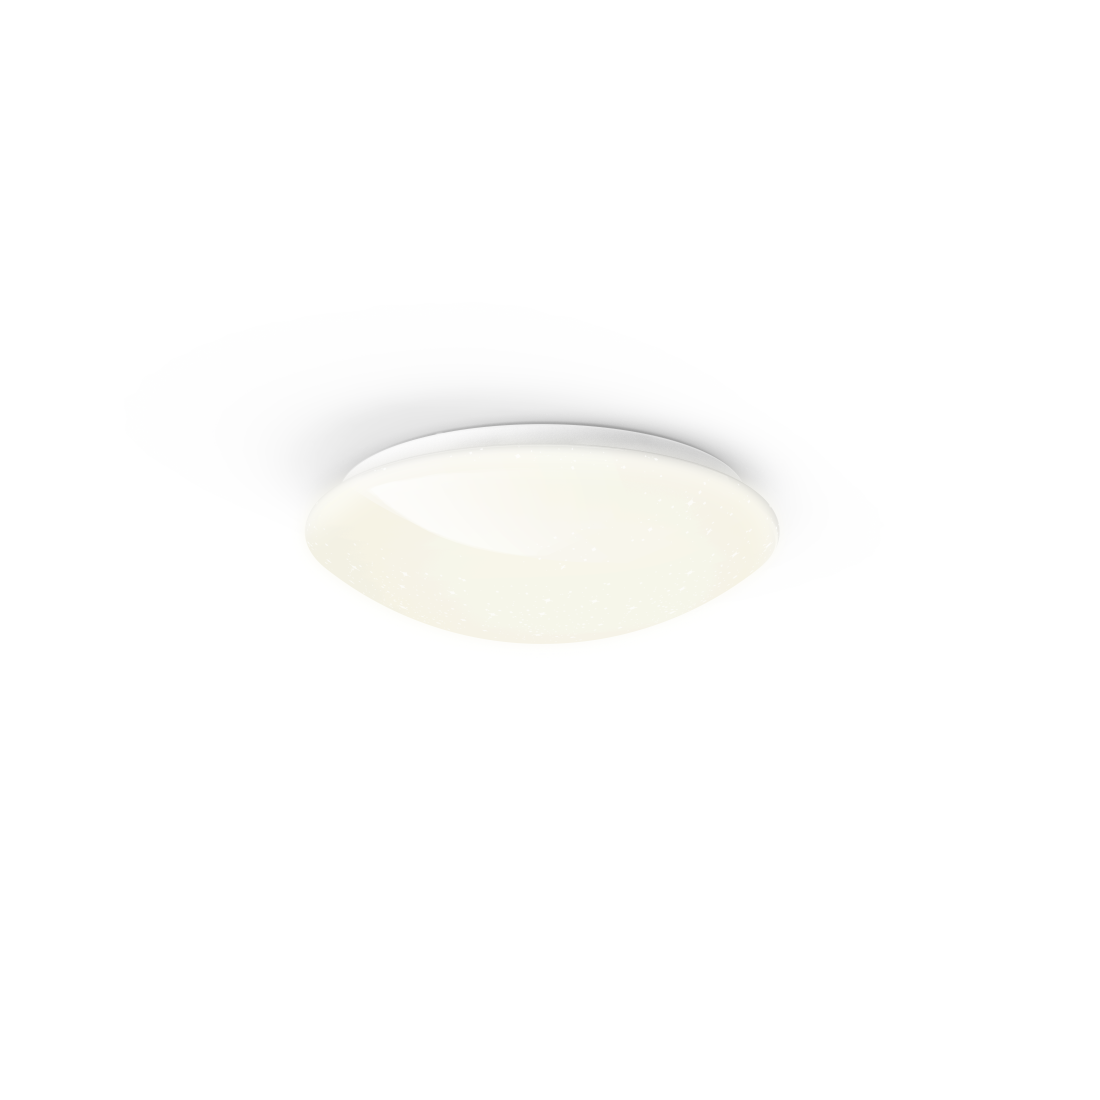 abx2 High-Res Image 2 - Hama, WiFi Ceiling Light, Glitter Effect, Round, Diameter 30 cm